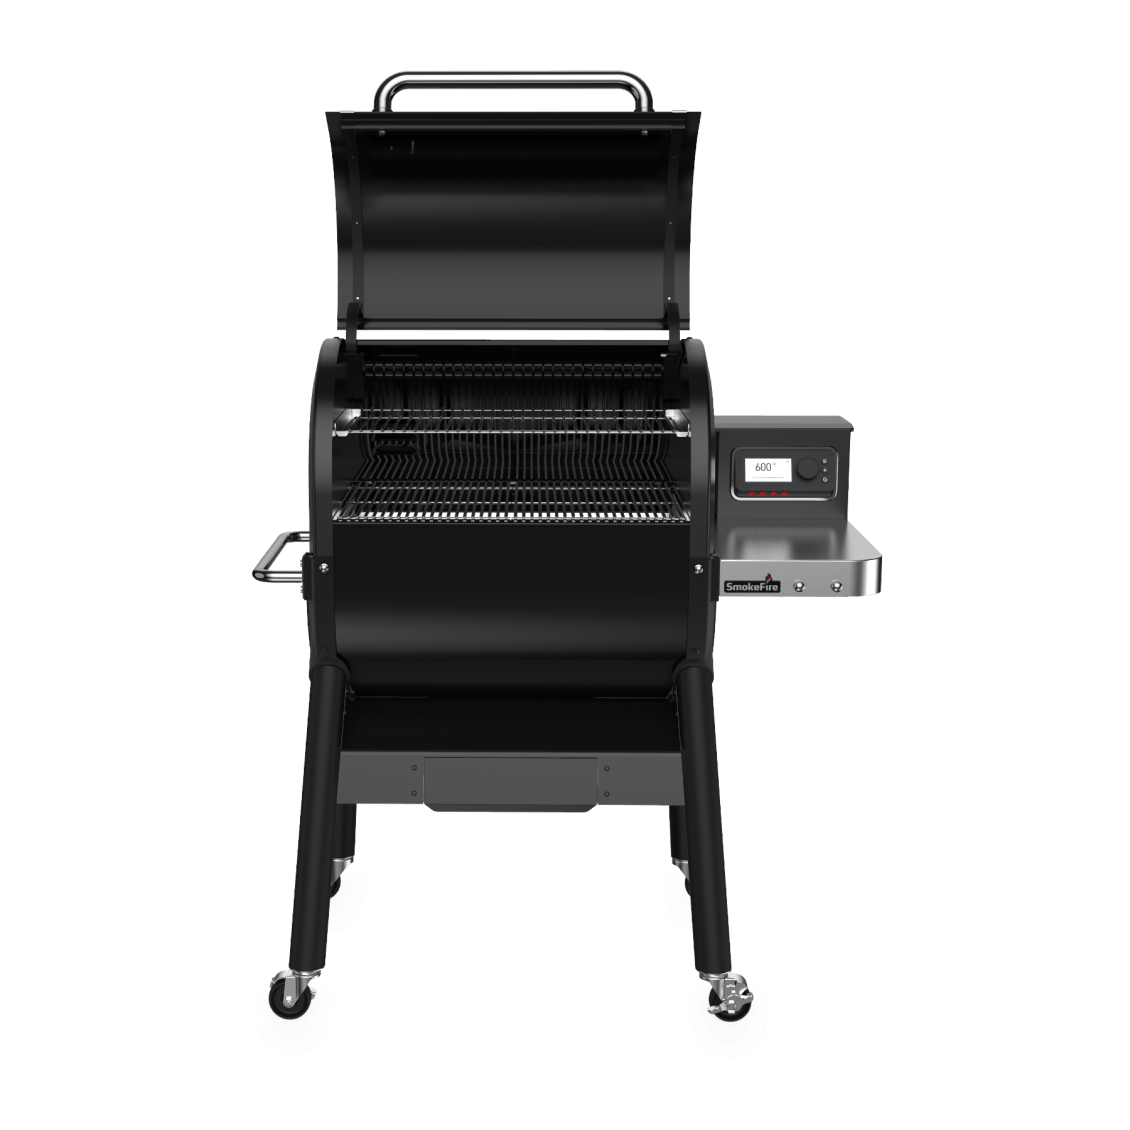 SmokeFire EX4 Wood Fired Pellet Grill View